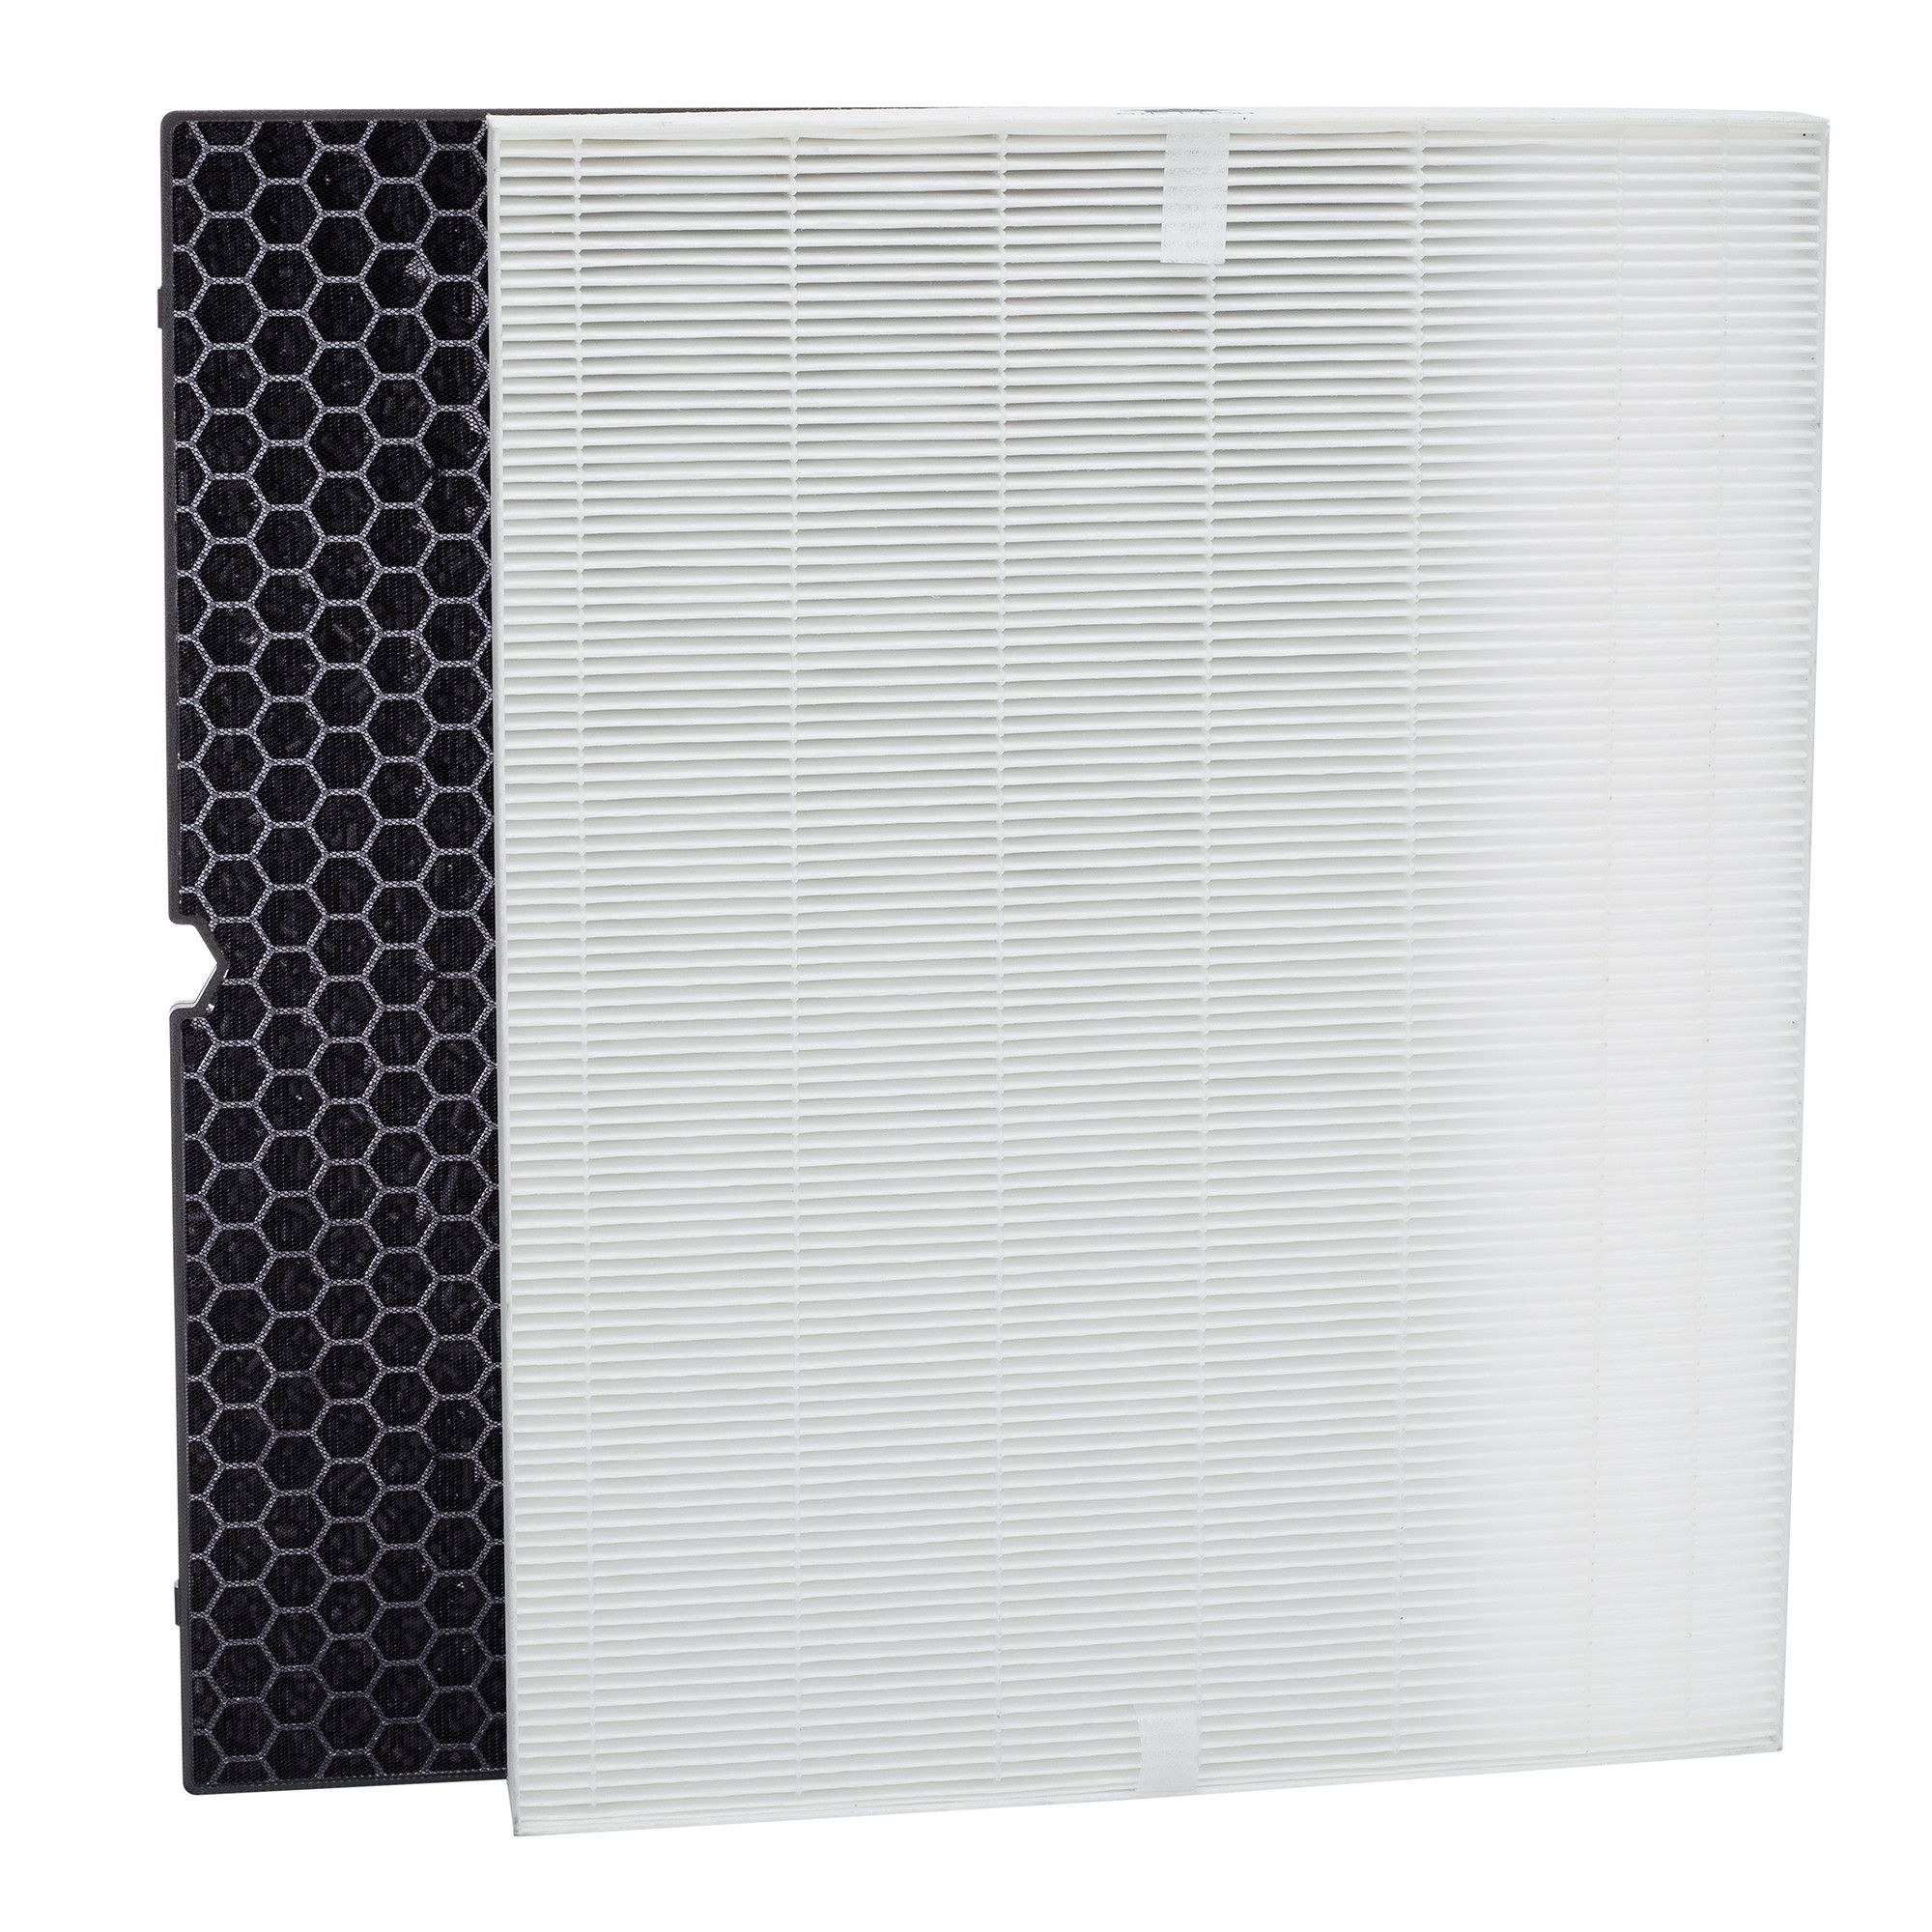 Winix Replacement Filter H for 55002 Filters, Hepa